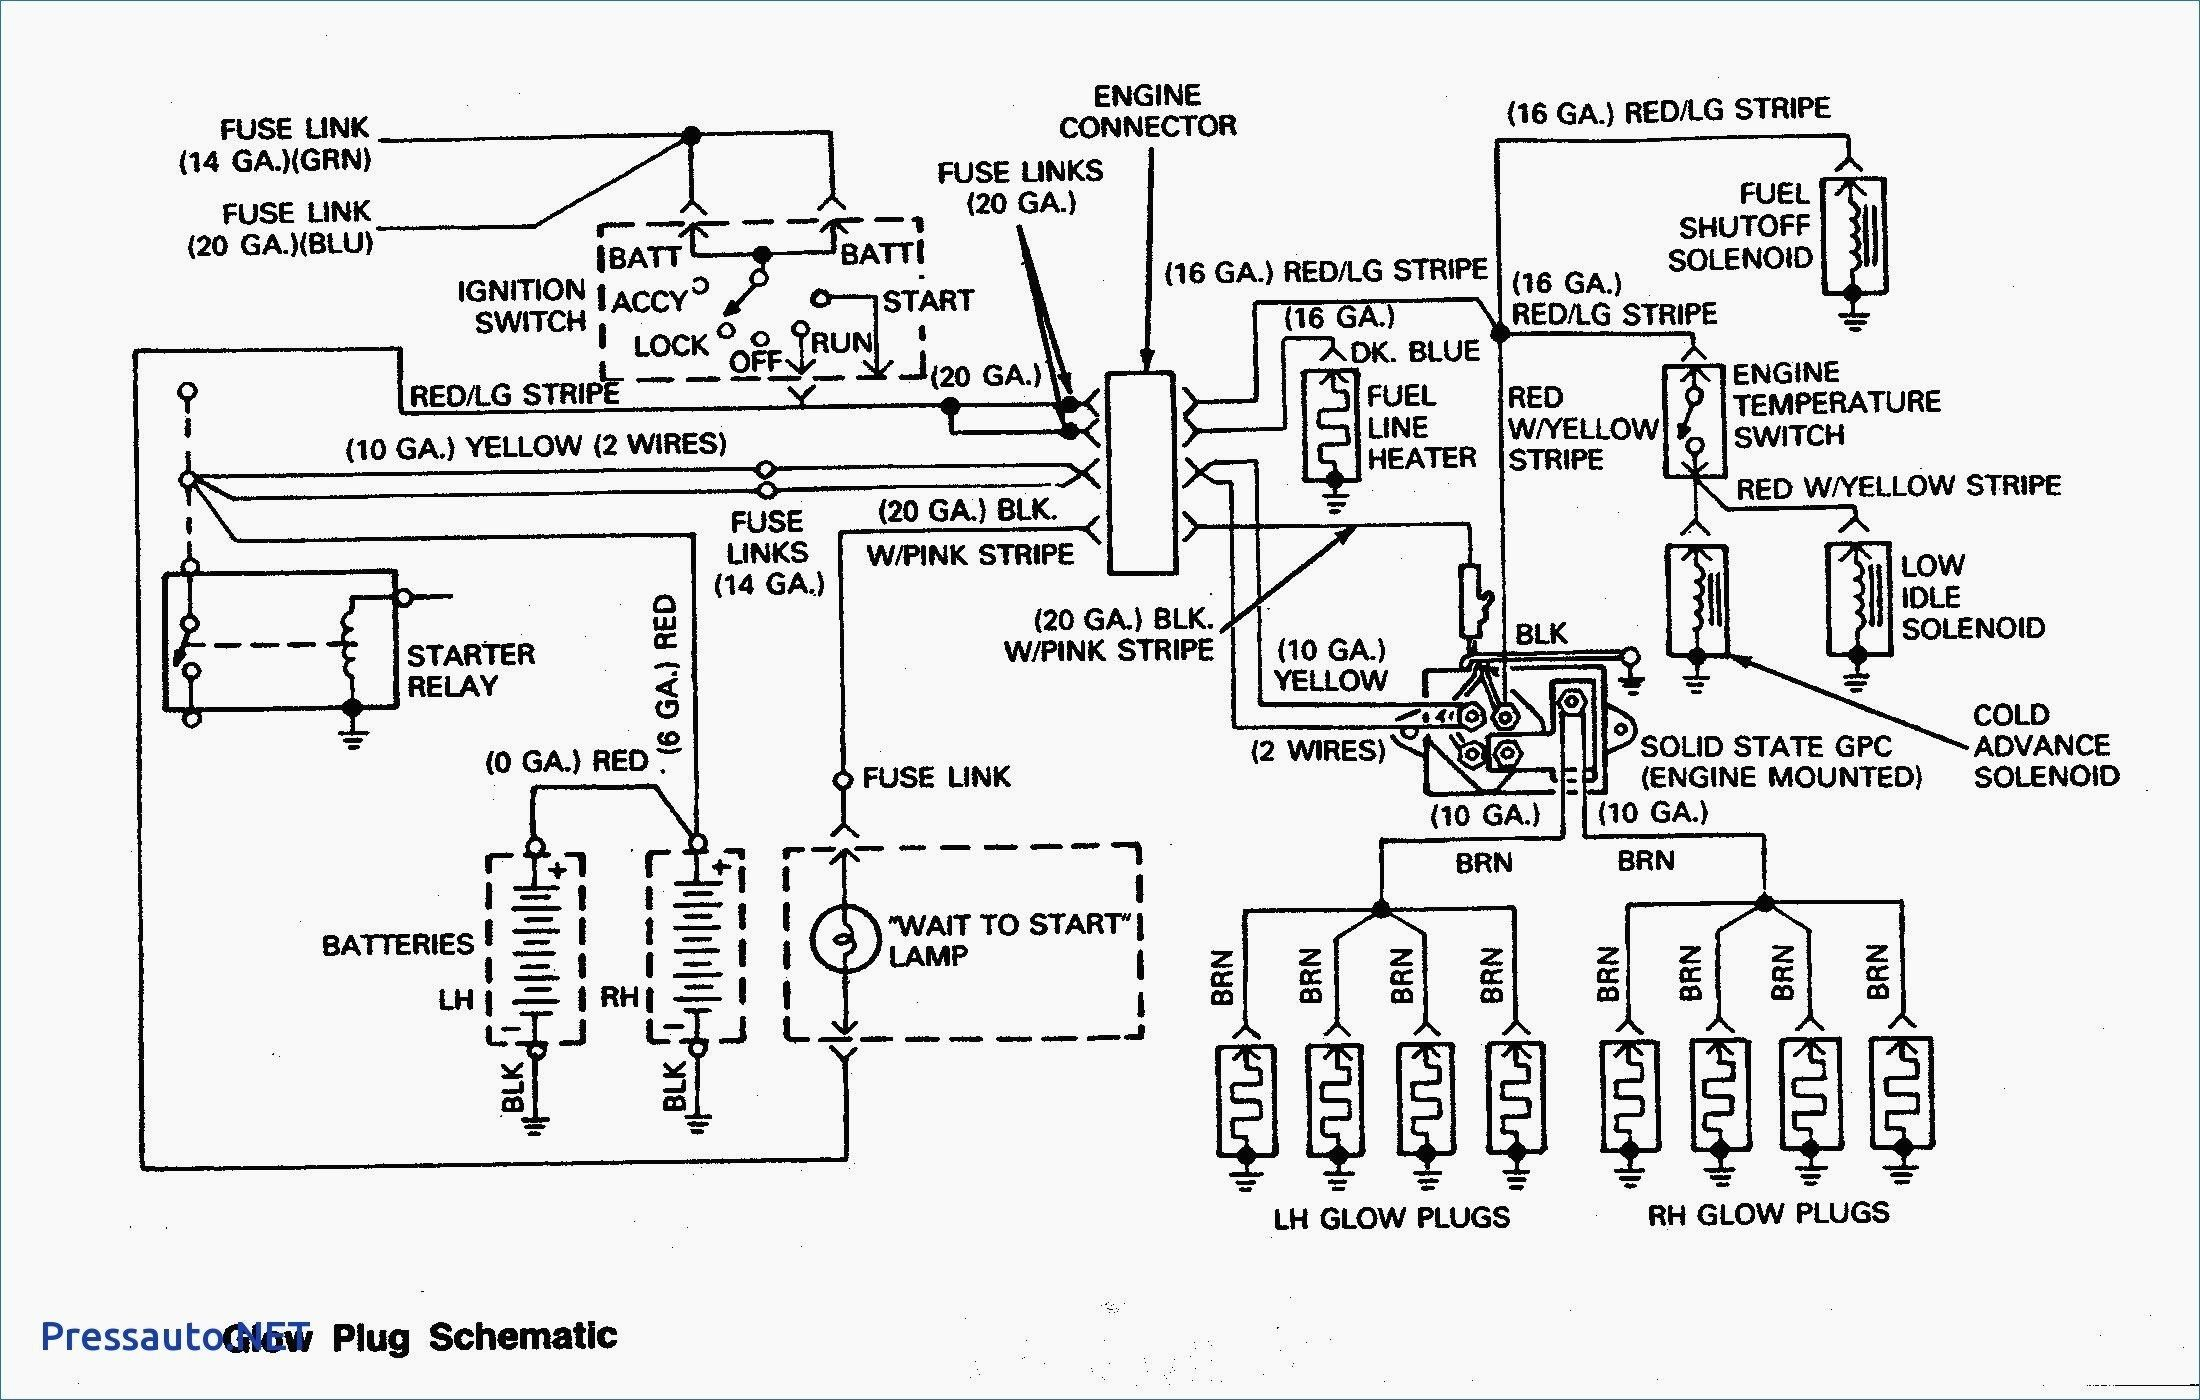 medium resolution of 6 duramax wiring schematic schematic diagram database engine diagram of 02 gmc 6 0 duramax